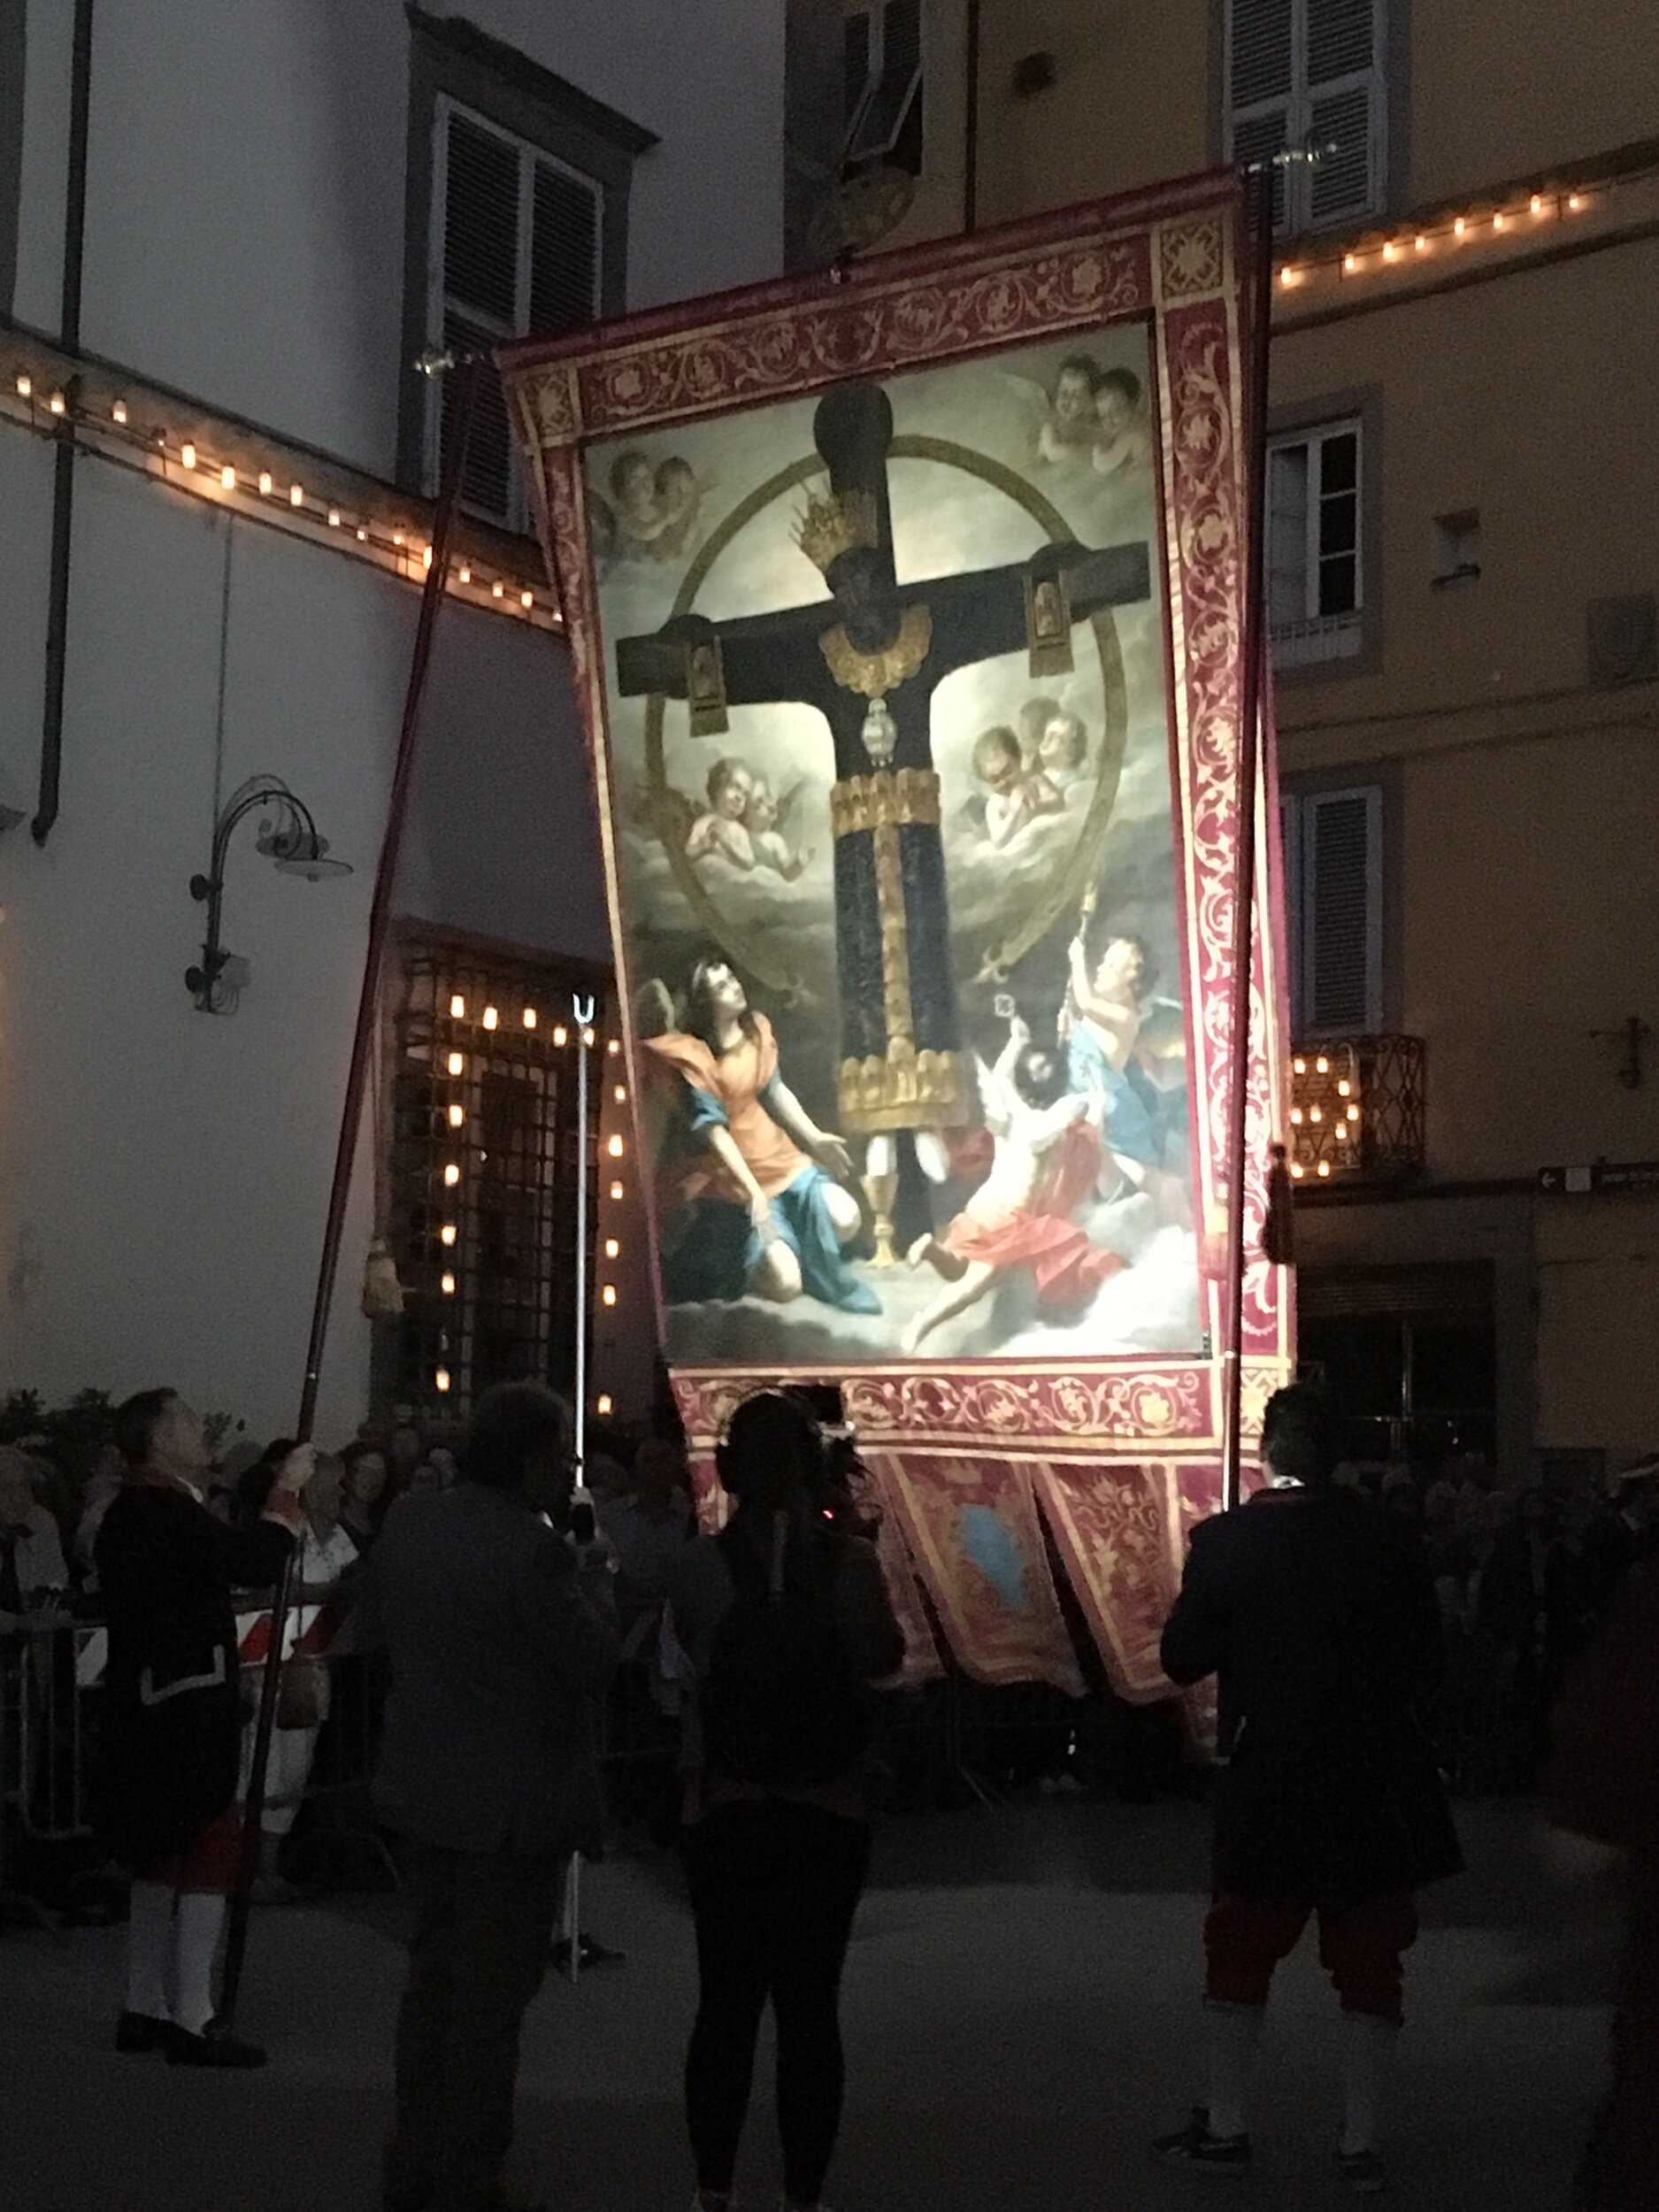 The  Santa Croce  (Holy Cross) procession, by candlelight, takes place on September 13 each year.